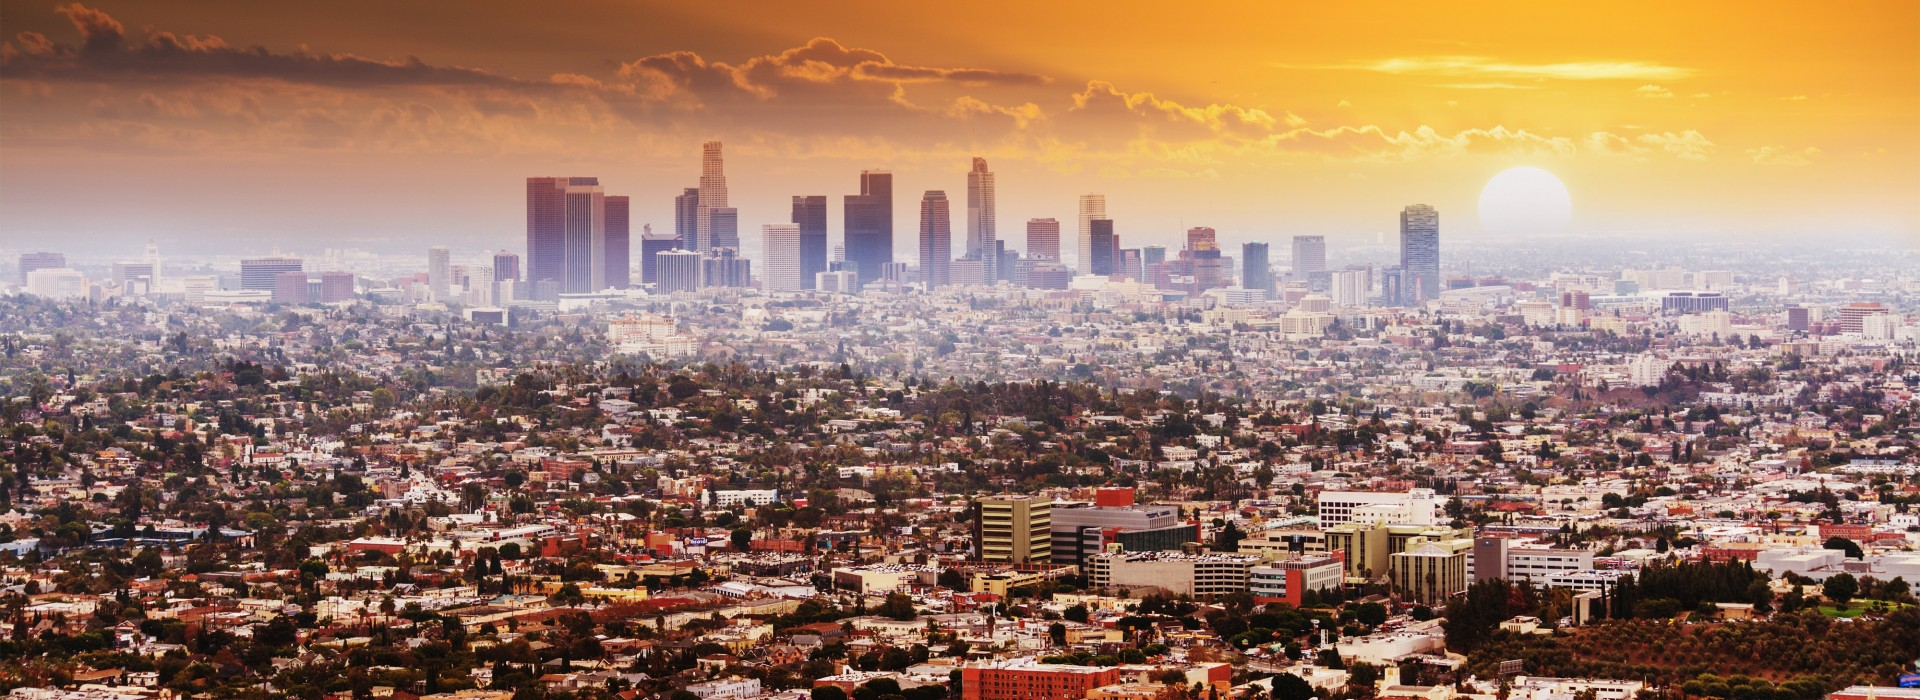 Travelling Los Angeles - Tours and Holiday Packages in Los Angeles